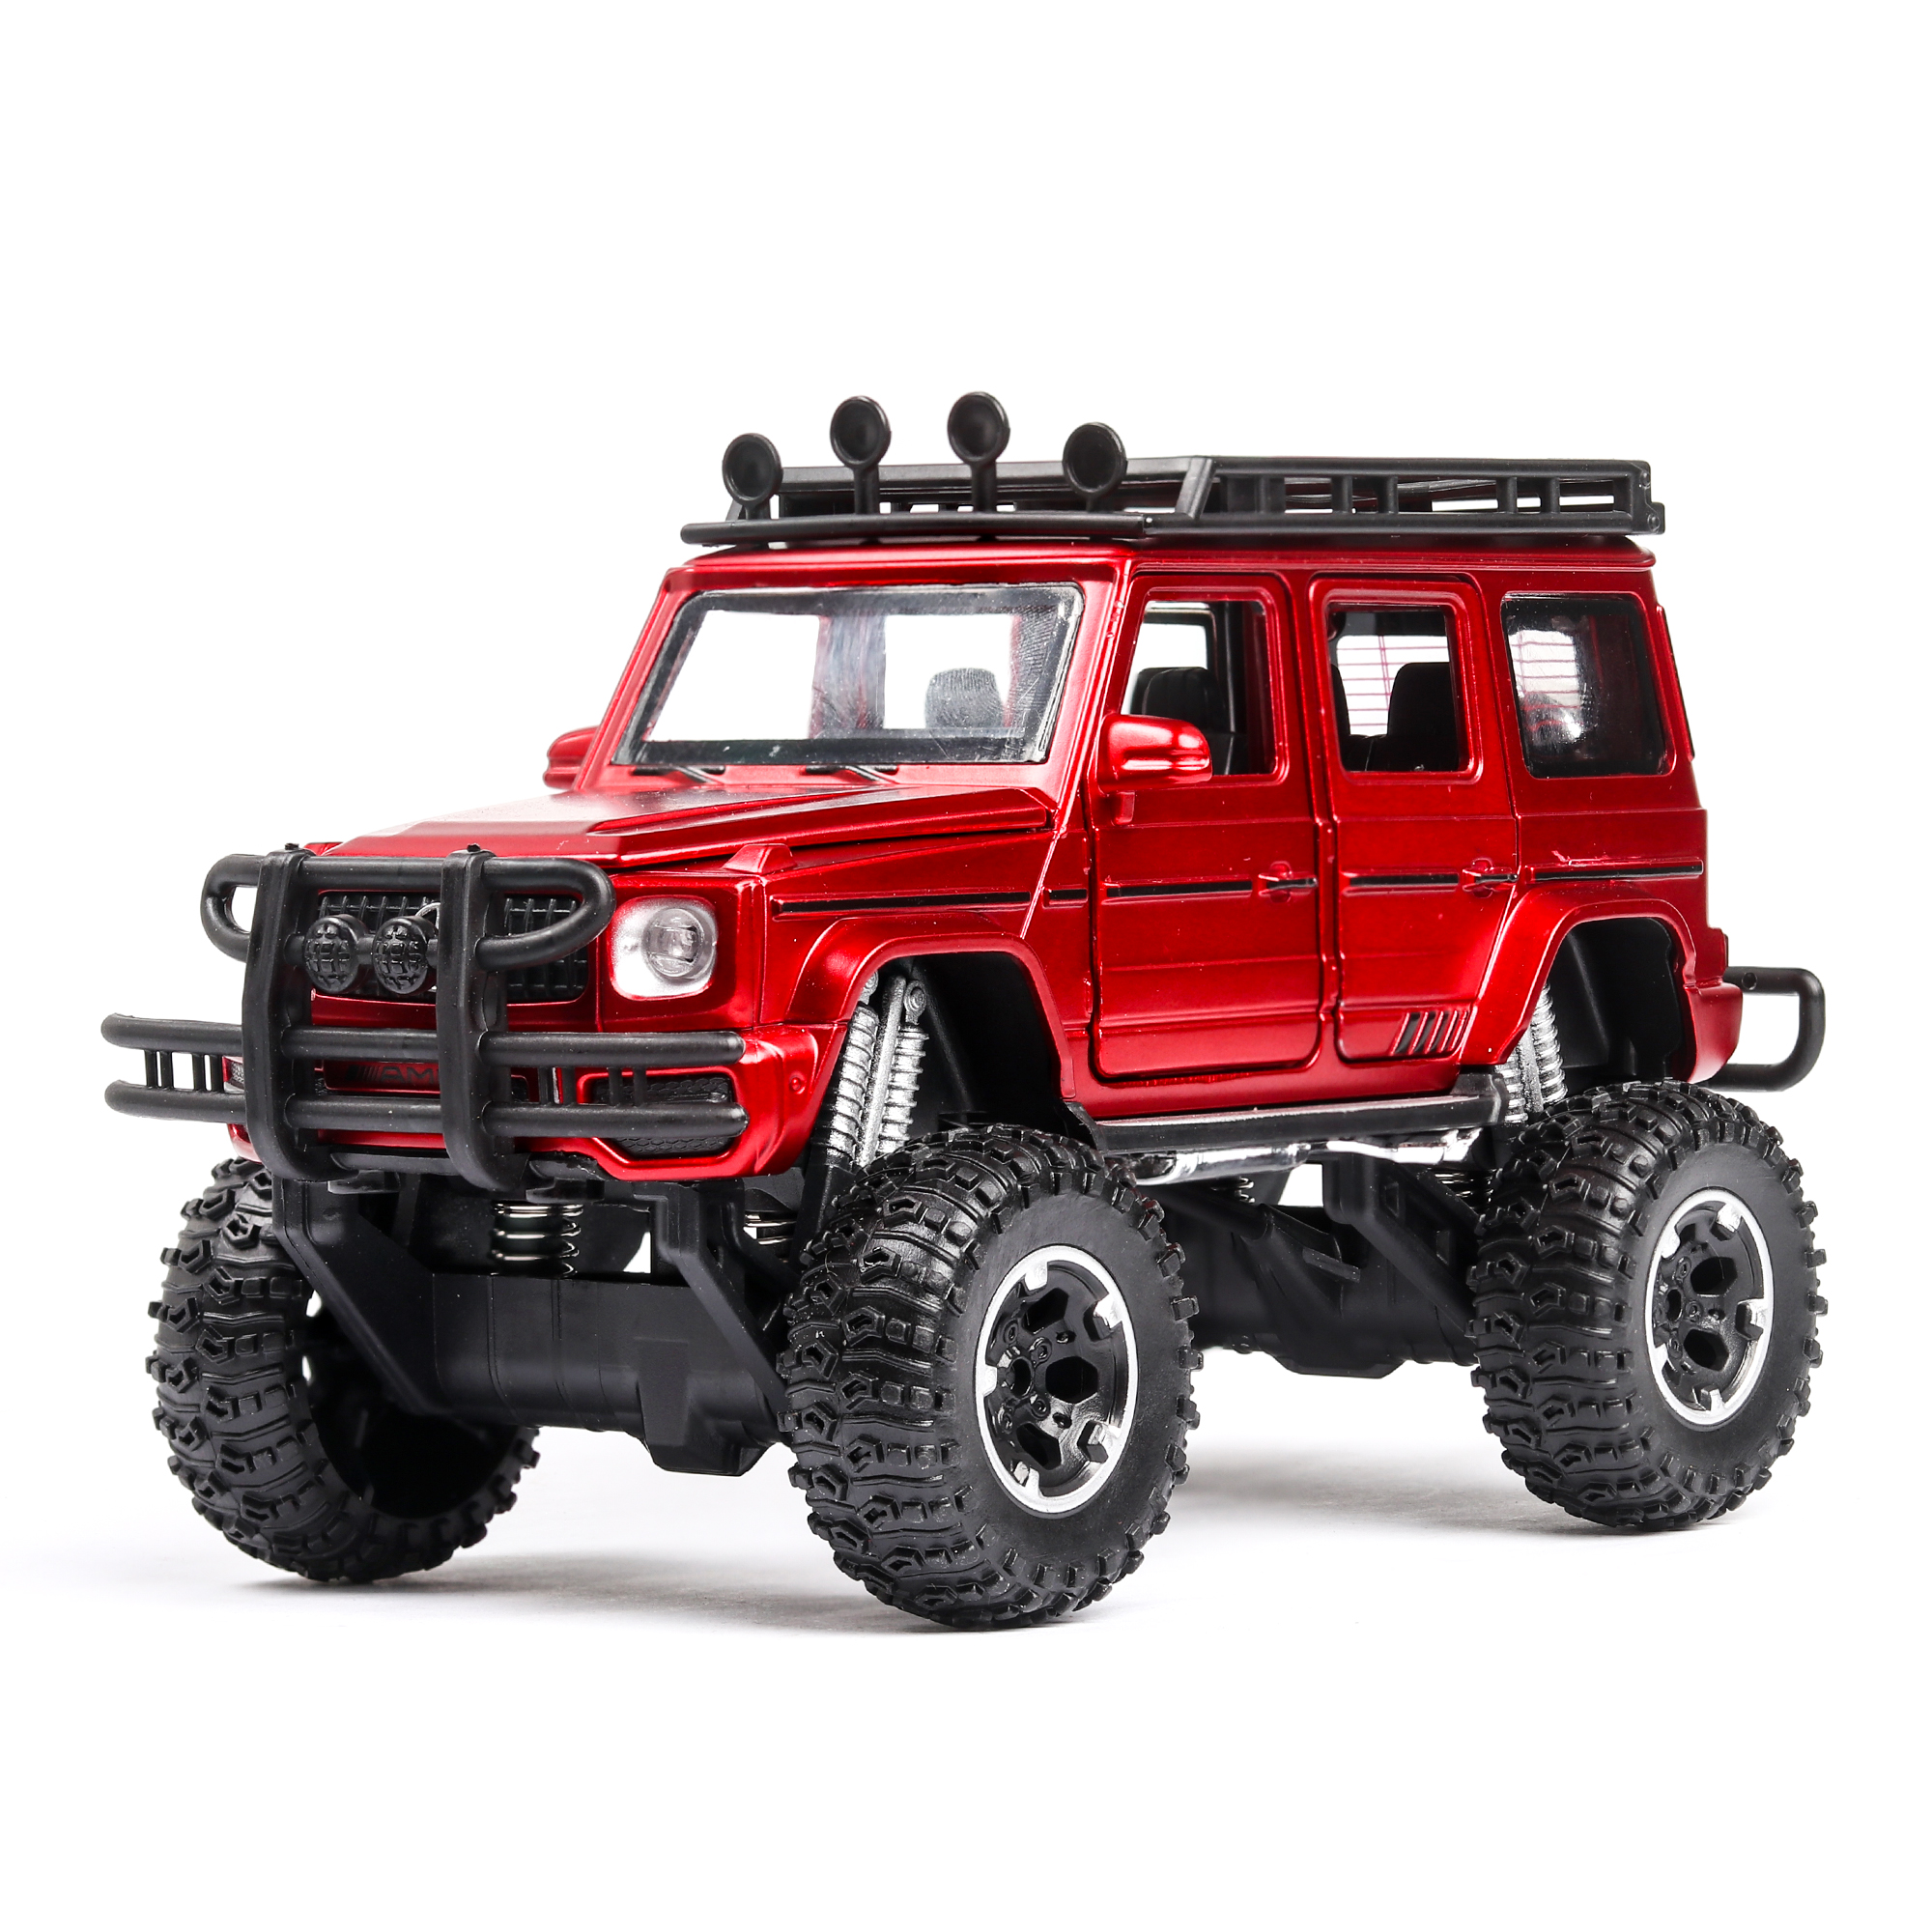 1:32 Diecast Metal Mercedes G63 Off Road SUV Car Model Vehicles G 63 6X6 Wheels Baby Kids Toys Vw Model Thomas And Friends Blaze